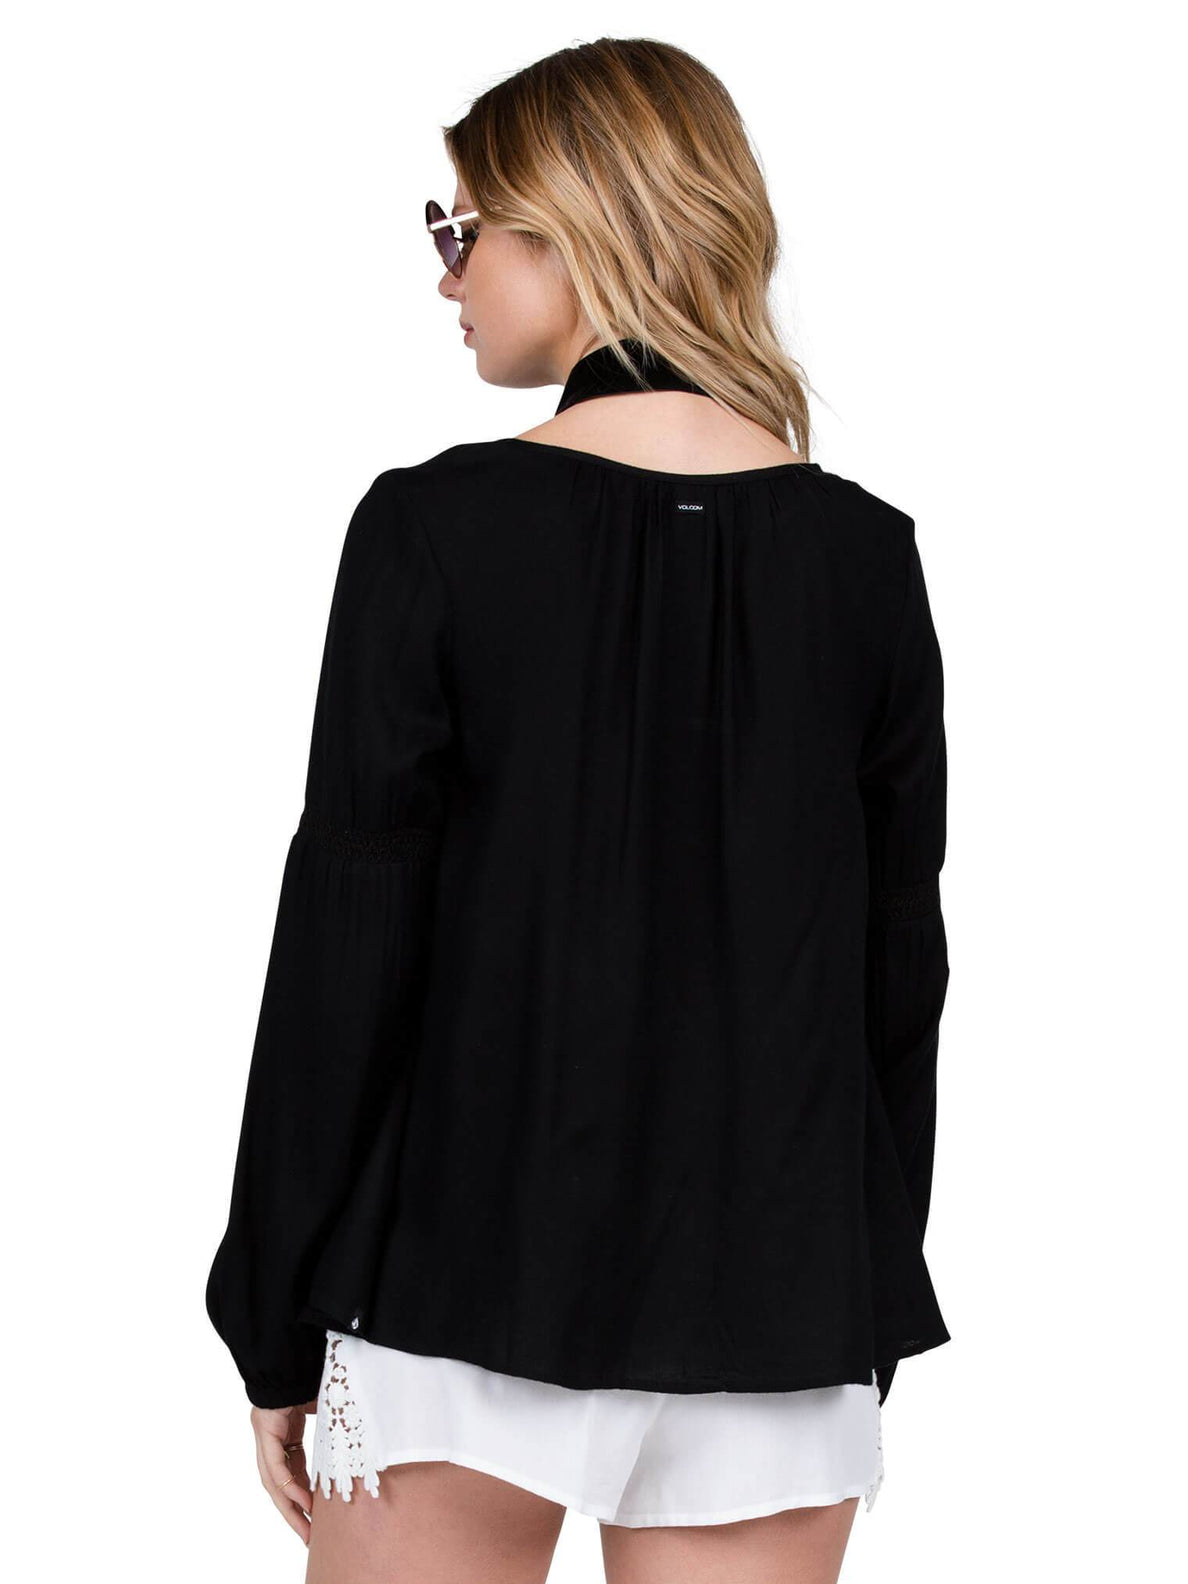 Ethos Long Sleeve Top - Black